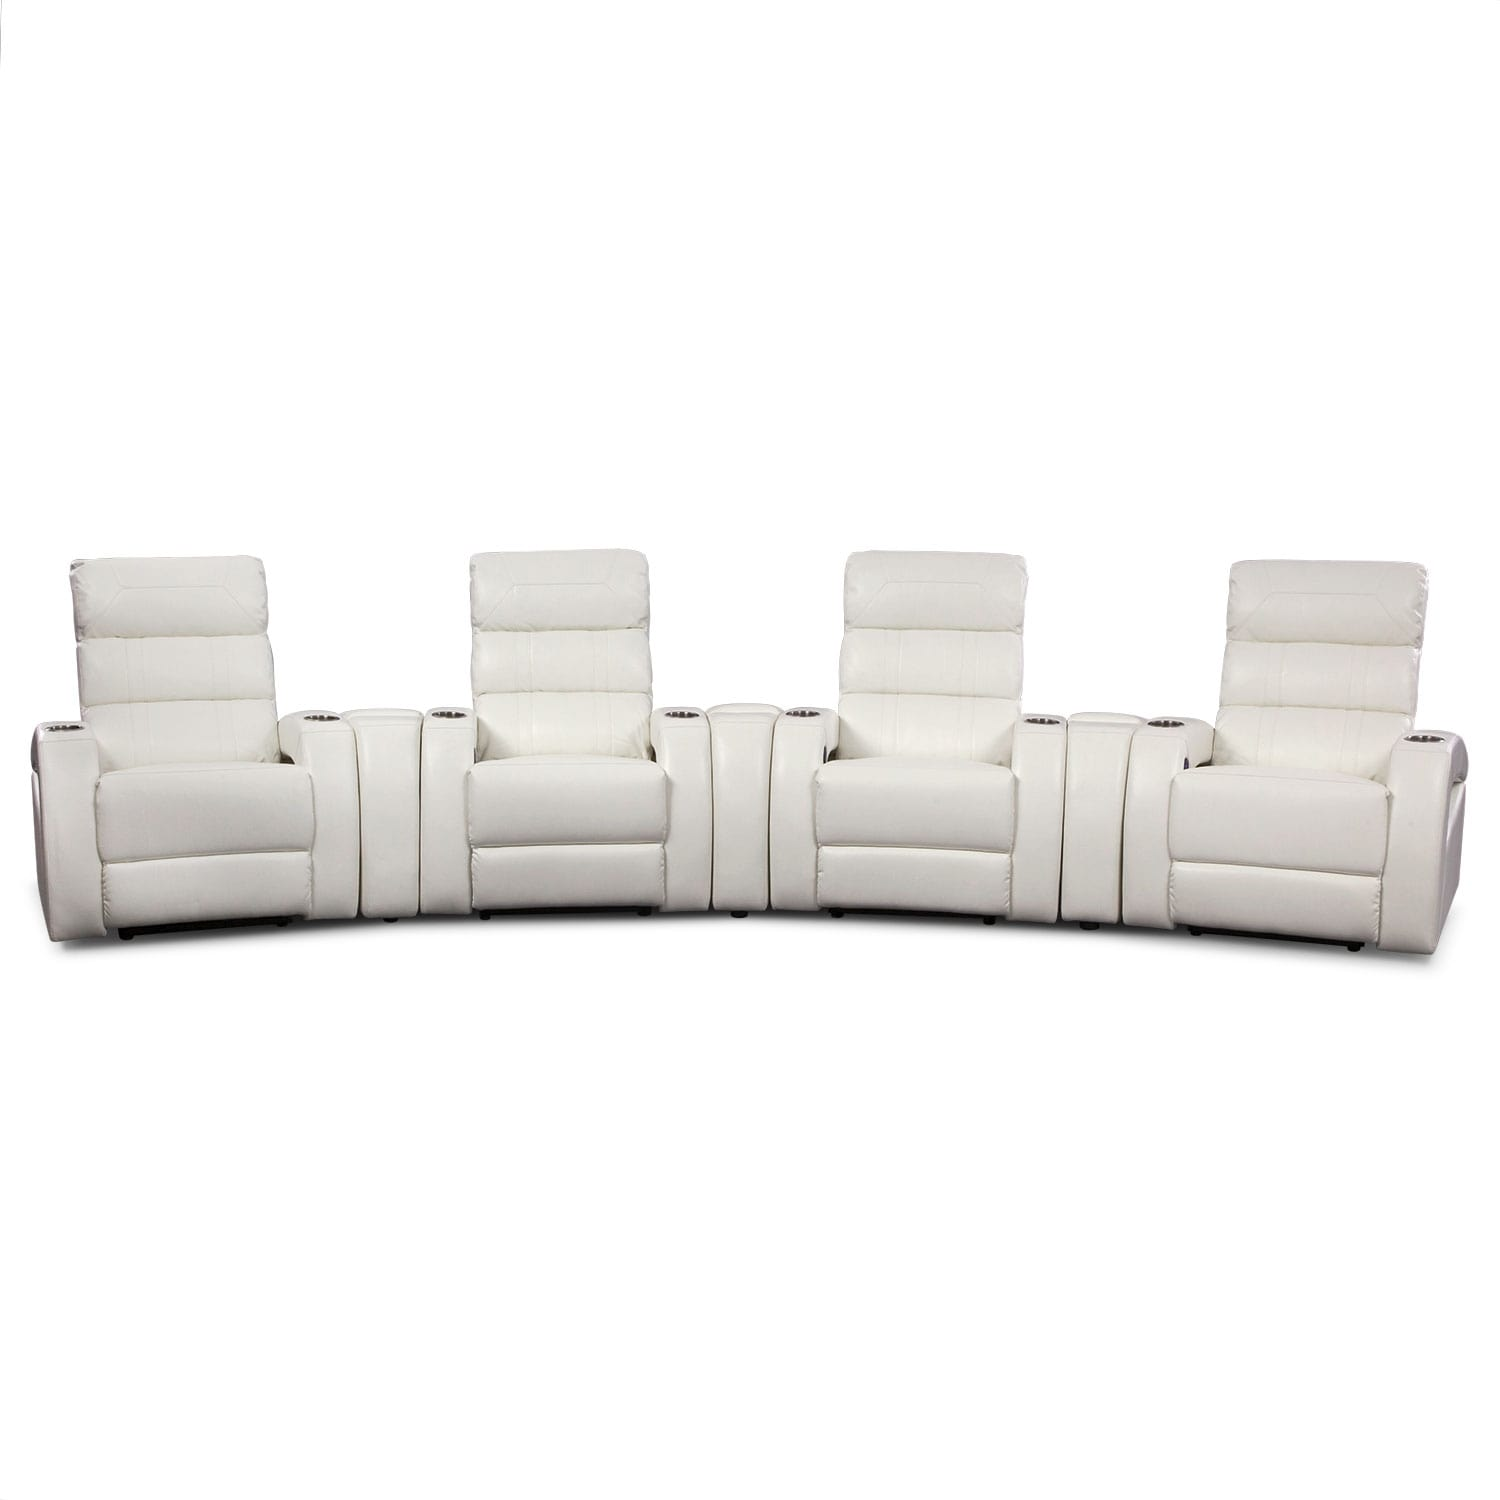 Paramount white leather 7 pc power home theater sectional for Sectional sofa for home theater